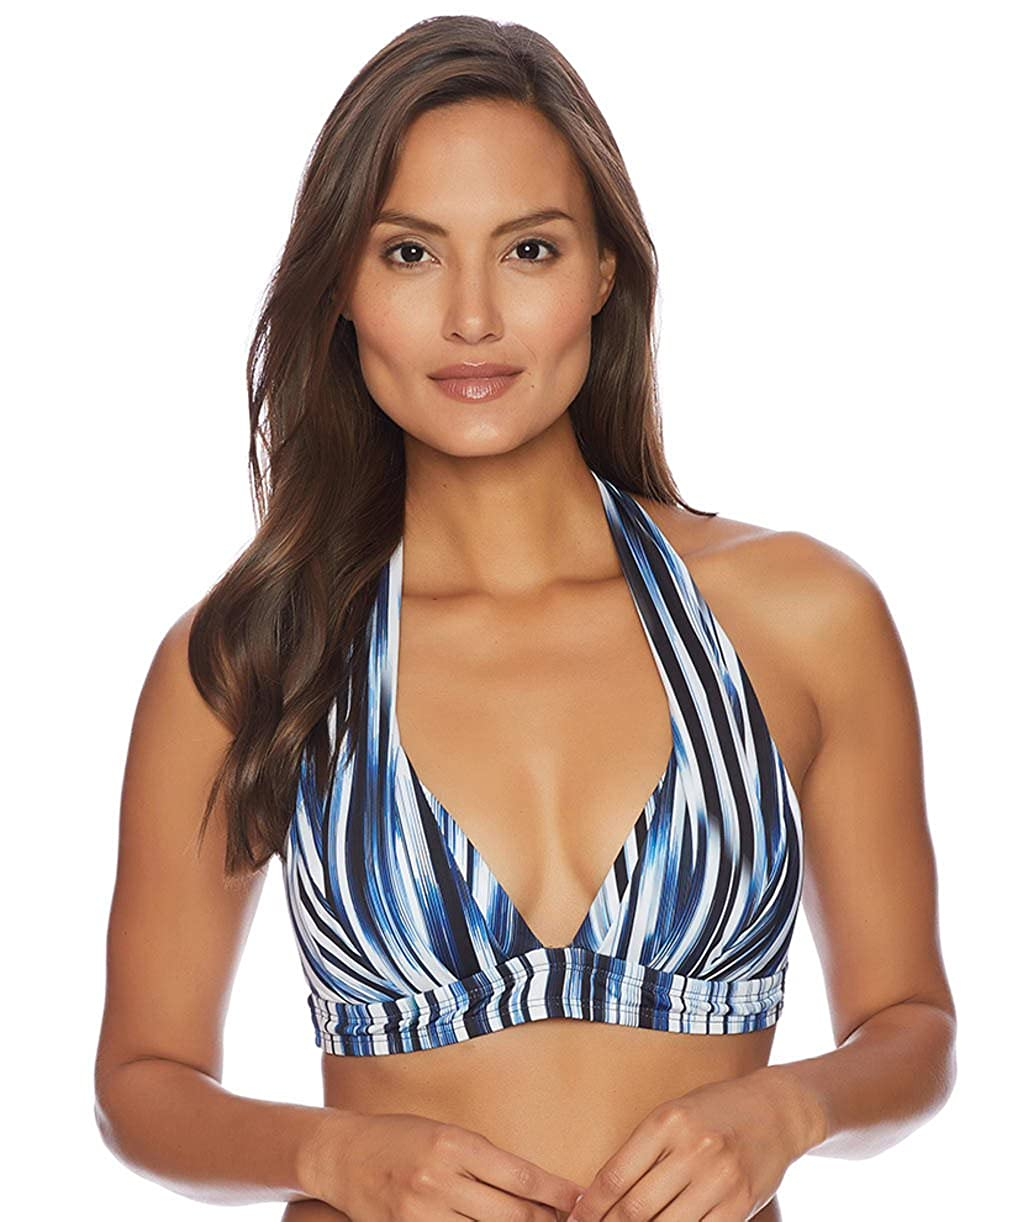 805ef2b6e6c Halter style bikini top with thick straps for support. Blue horizon striped  style print in blue